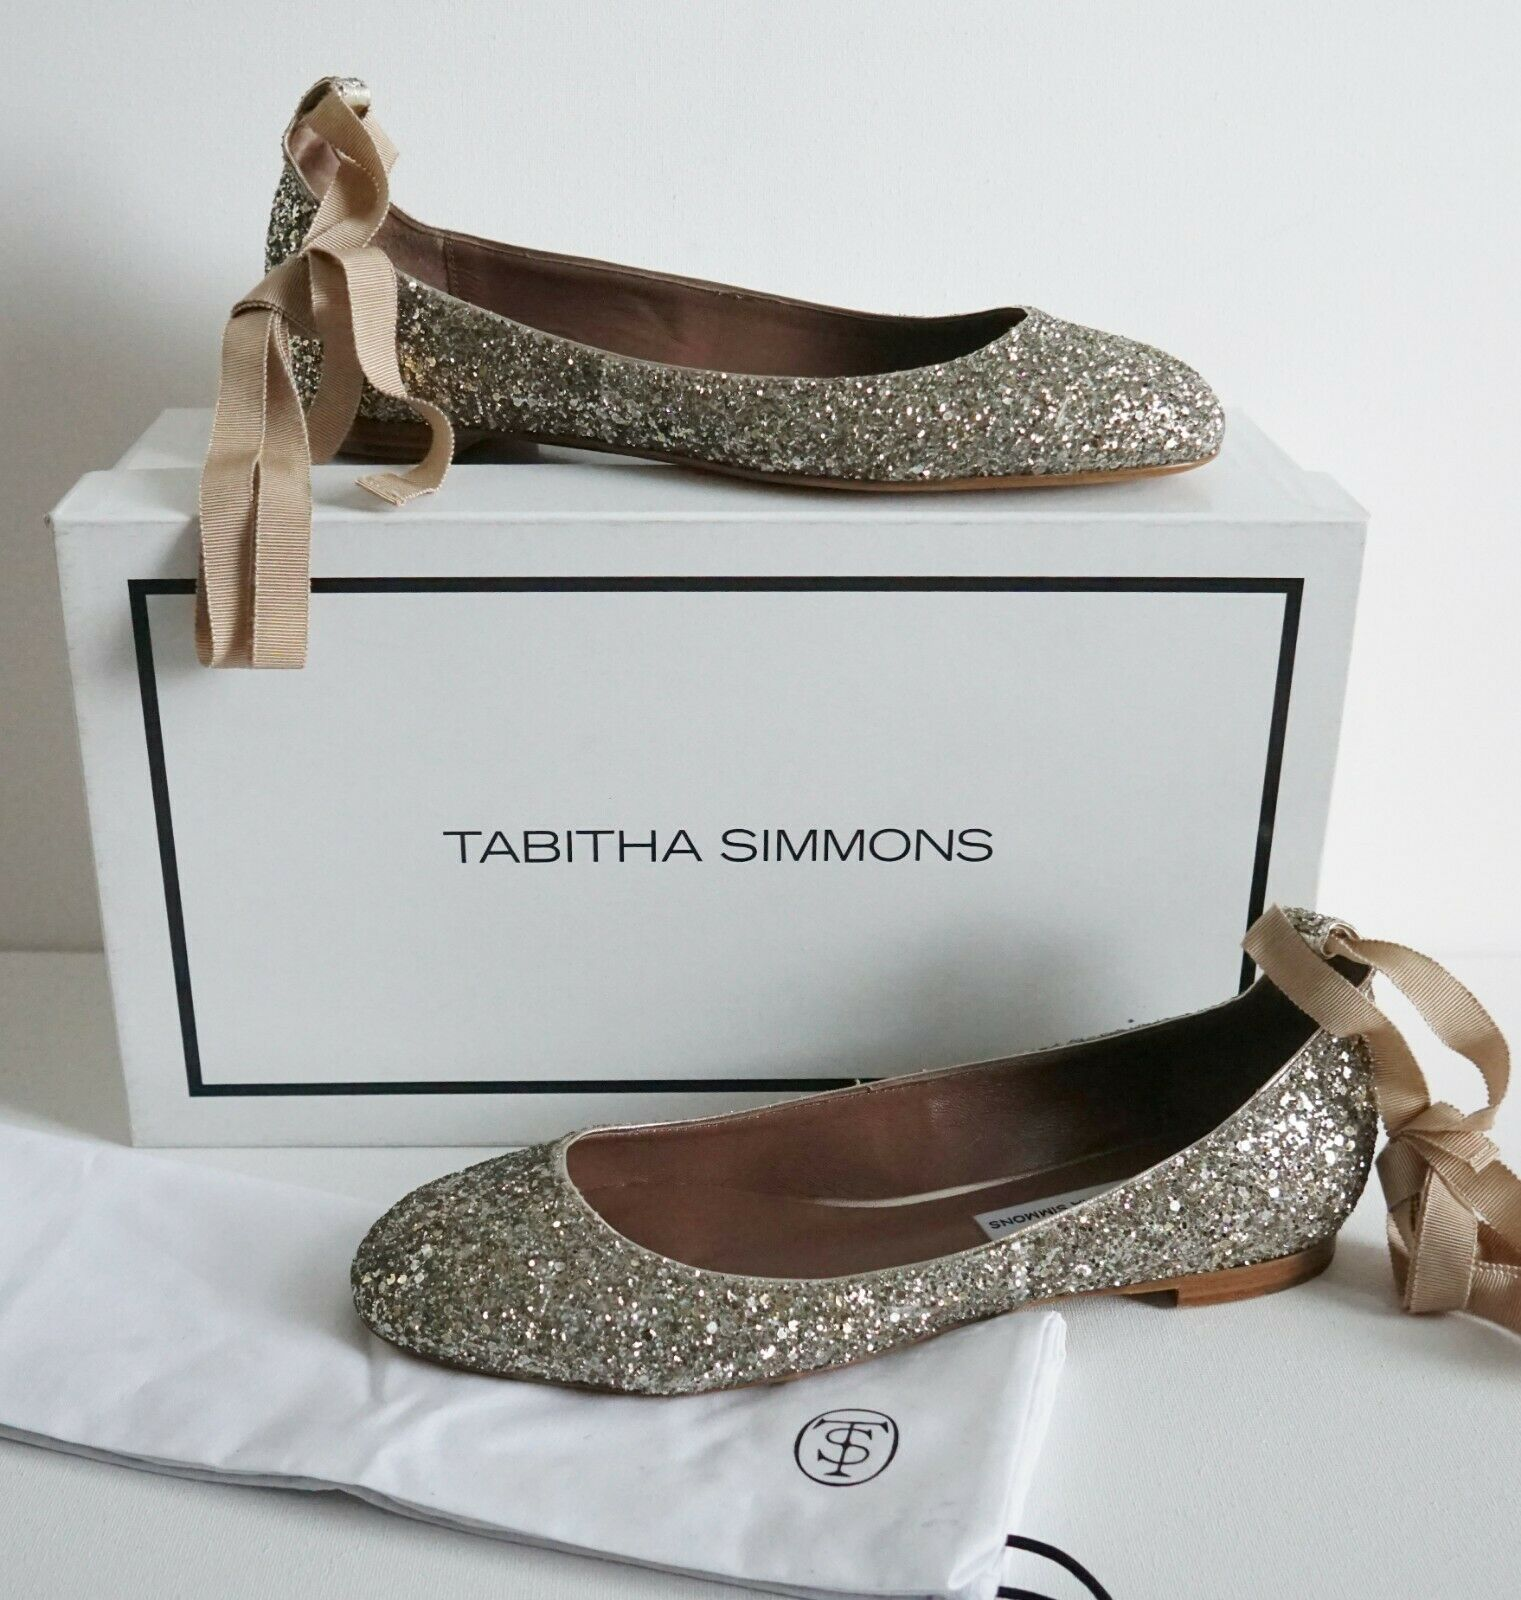 NIB Authentic TABITHA SIMMONS DARIA GLITTER Ballet Flats shoes EUR-38 US-8